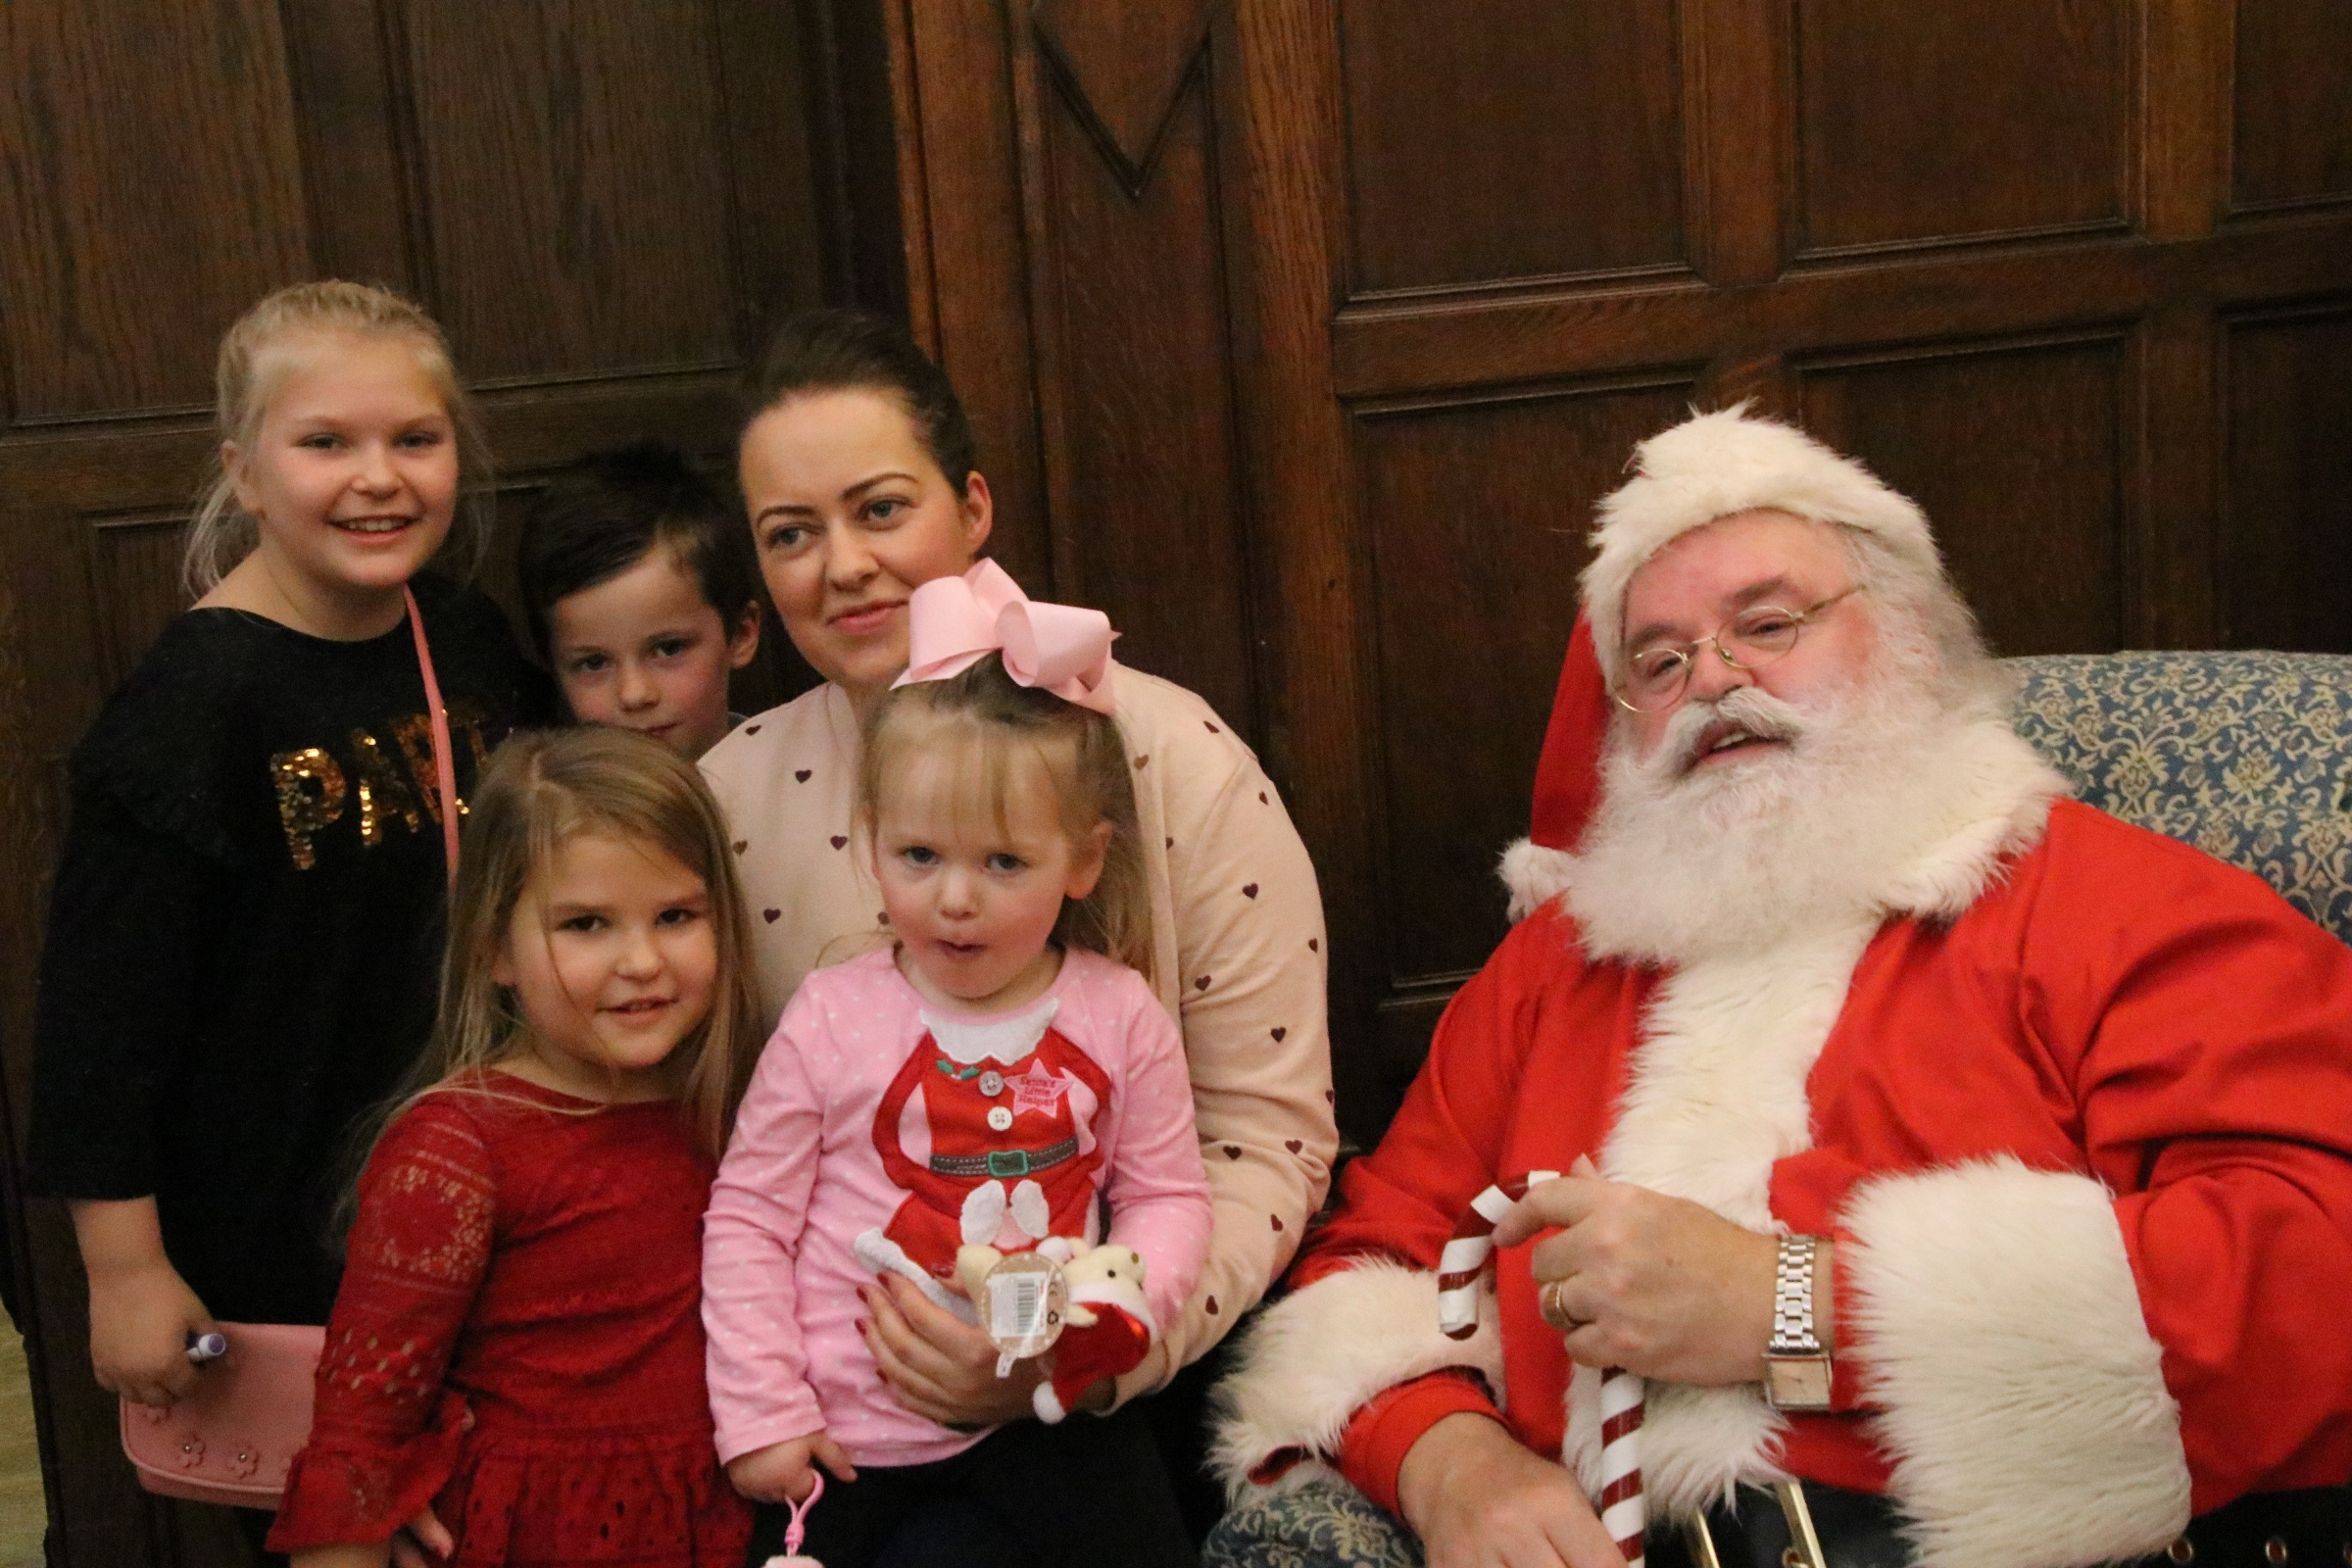 Children got the chance to meet and have their picture taken with Santa